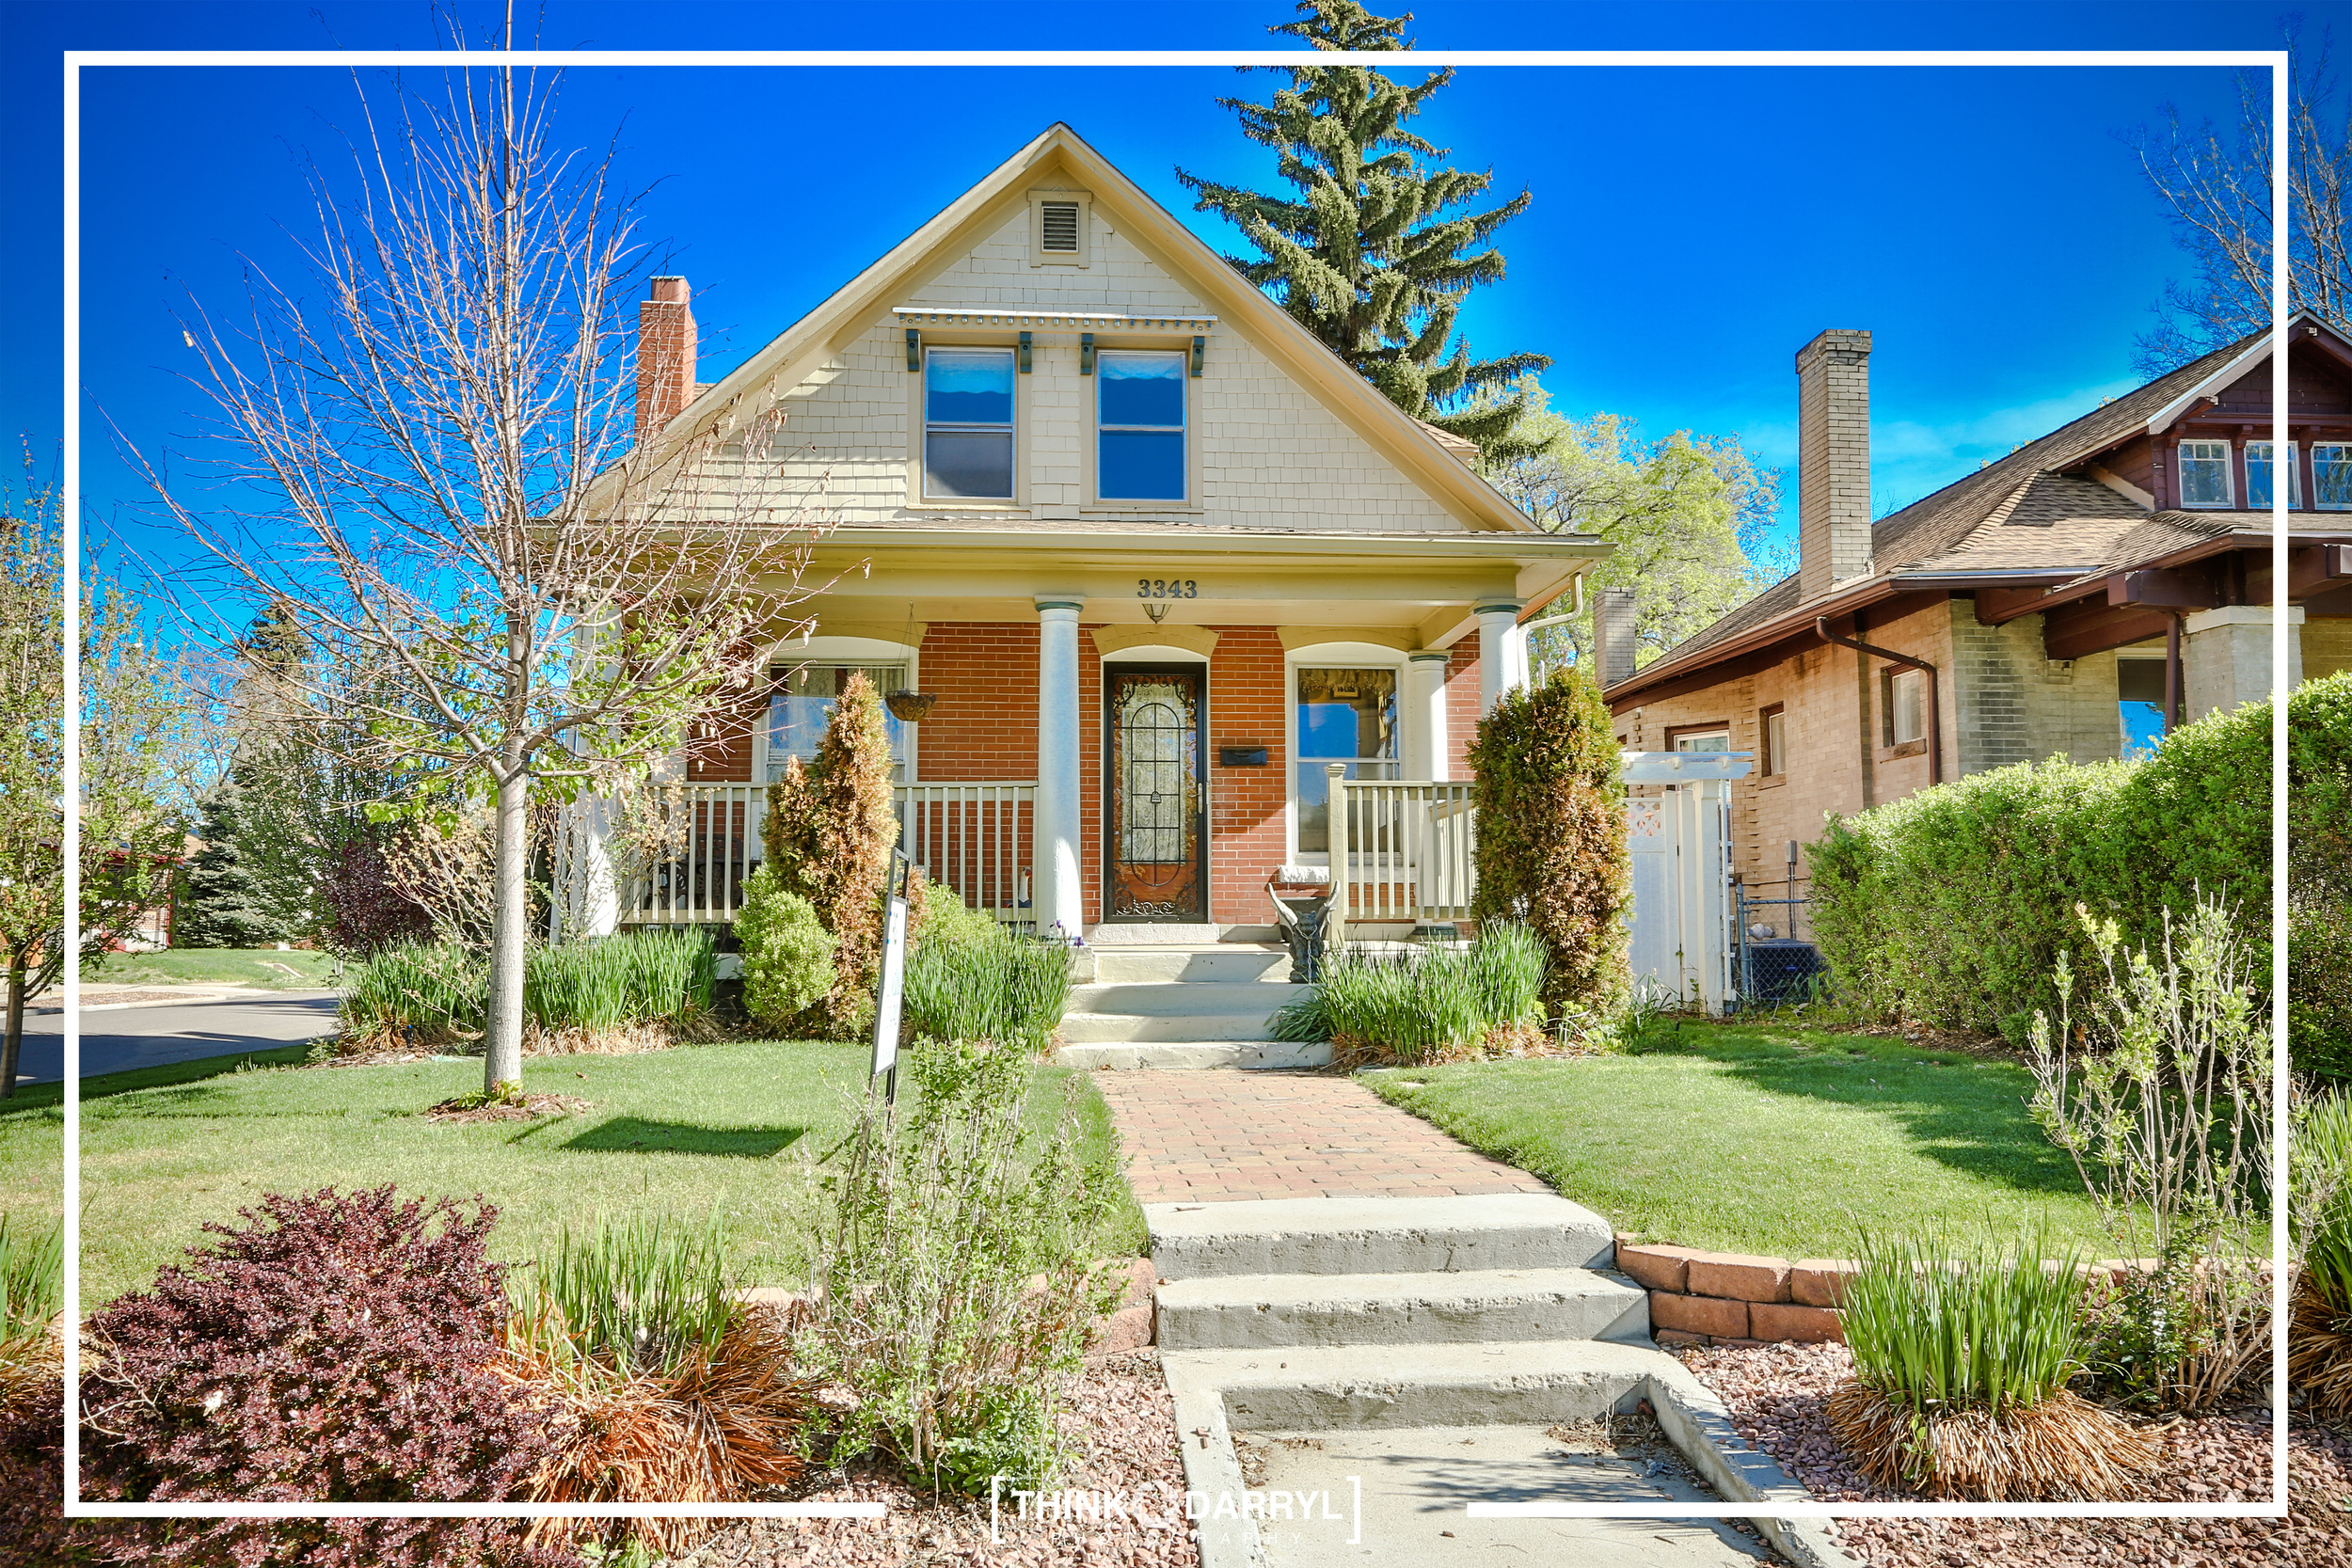 3343 W 26th Ave | Denver's Real Estate Photographer